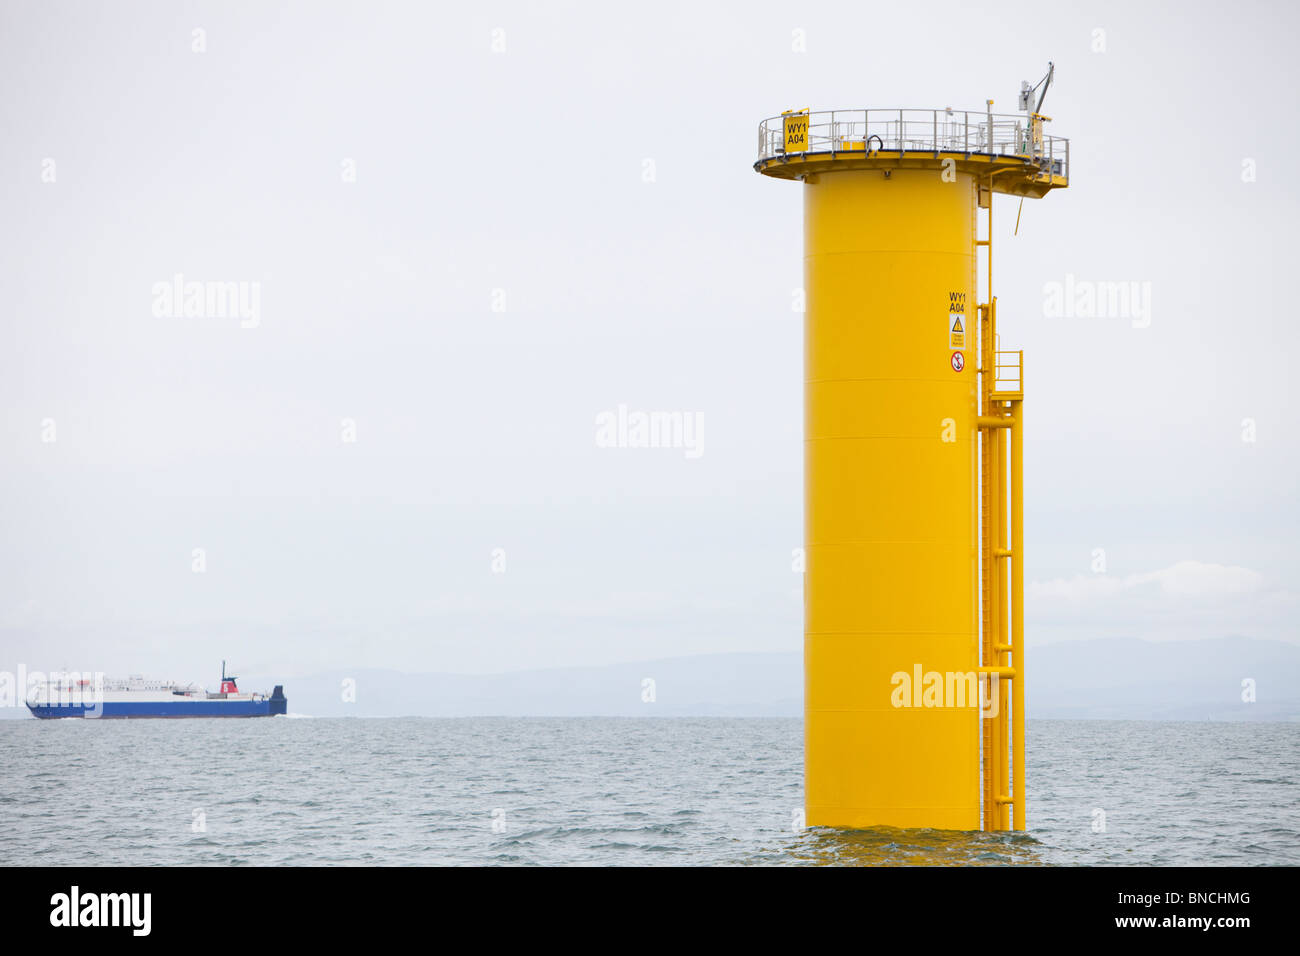 Dong Energy's construction of the new Walney off shore wind farm. - Stock Image